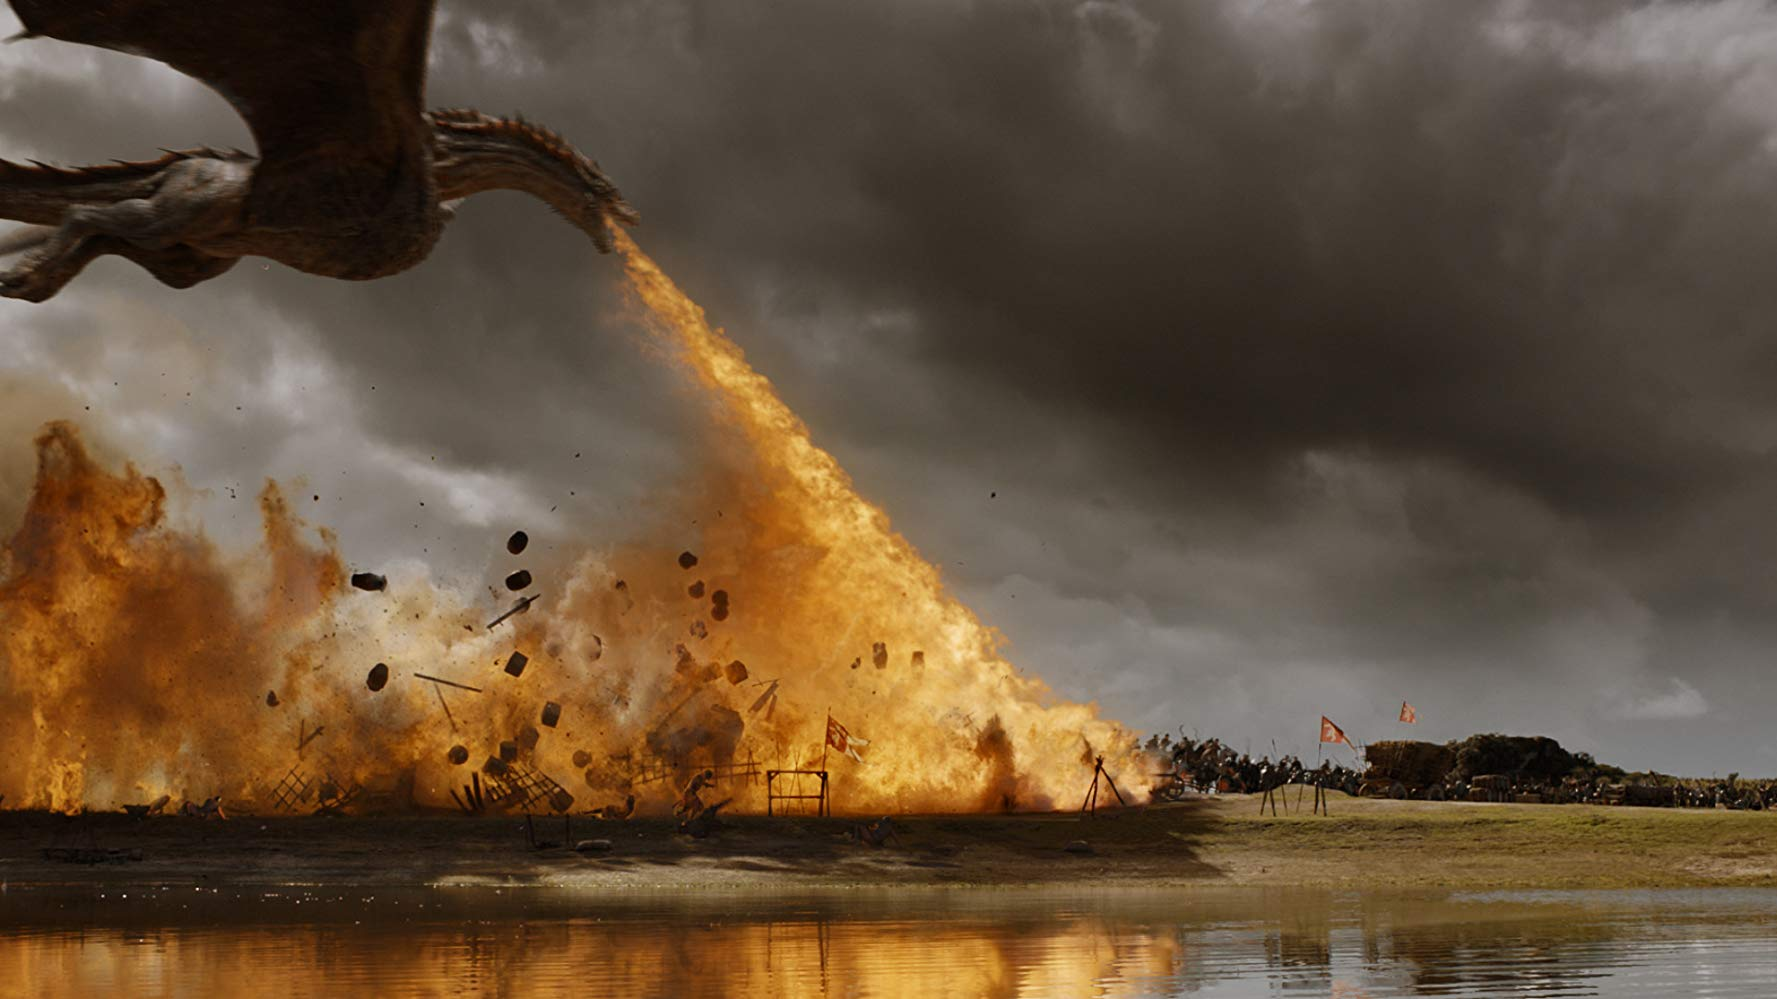 Drogon setting the battlefield ablaze in 'Game of Thrones'. Source: IMDB